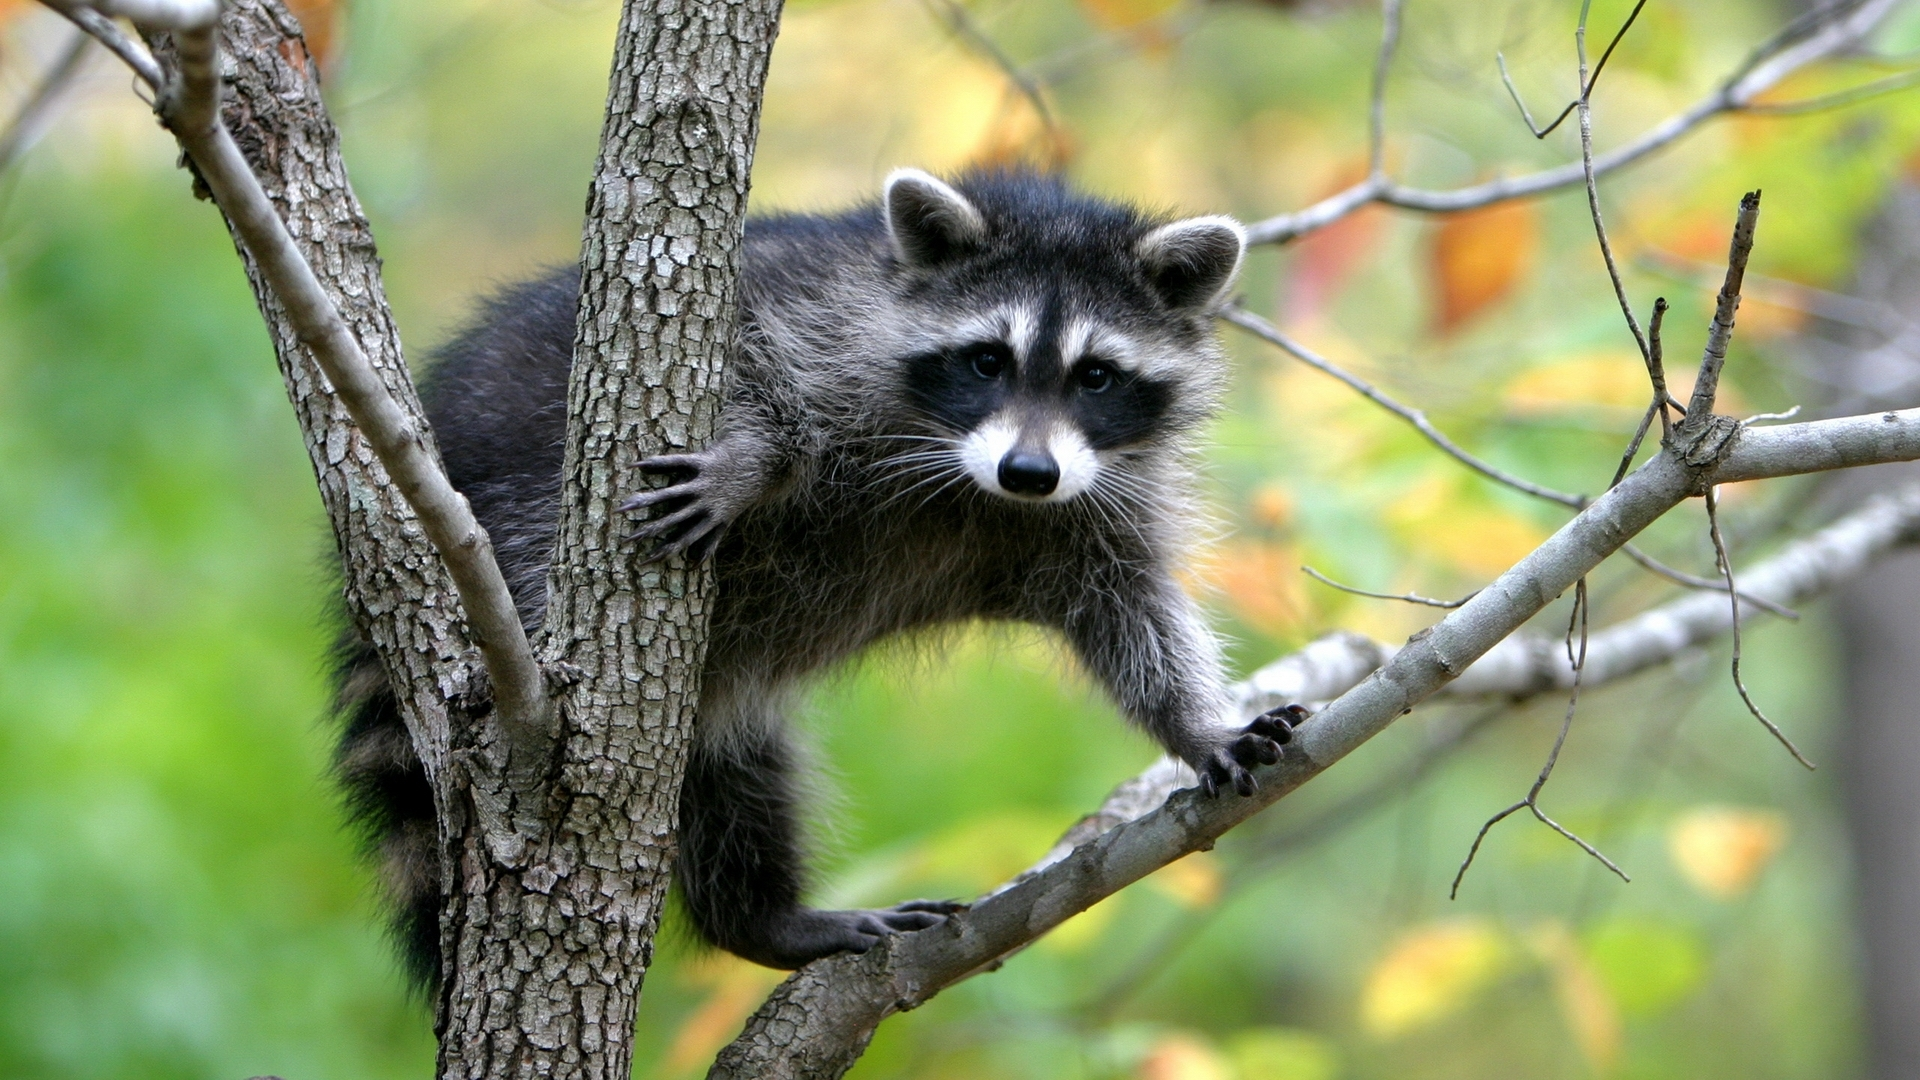 48994 download wallpaper Animals, Raccoons screensavers and pictures for free